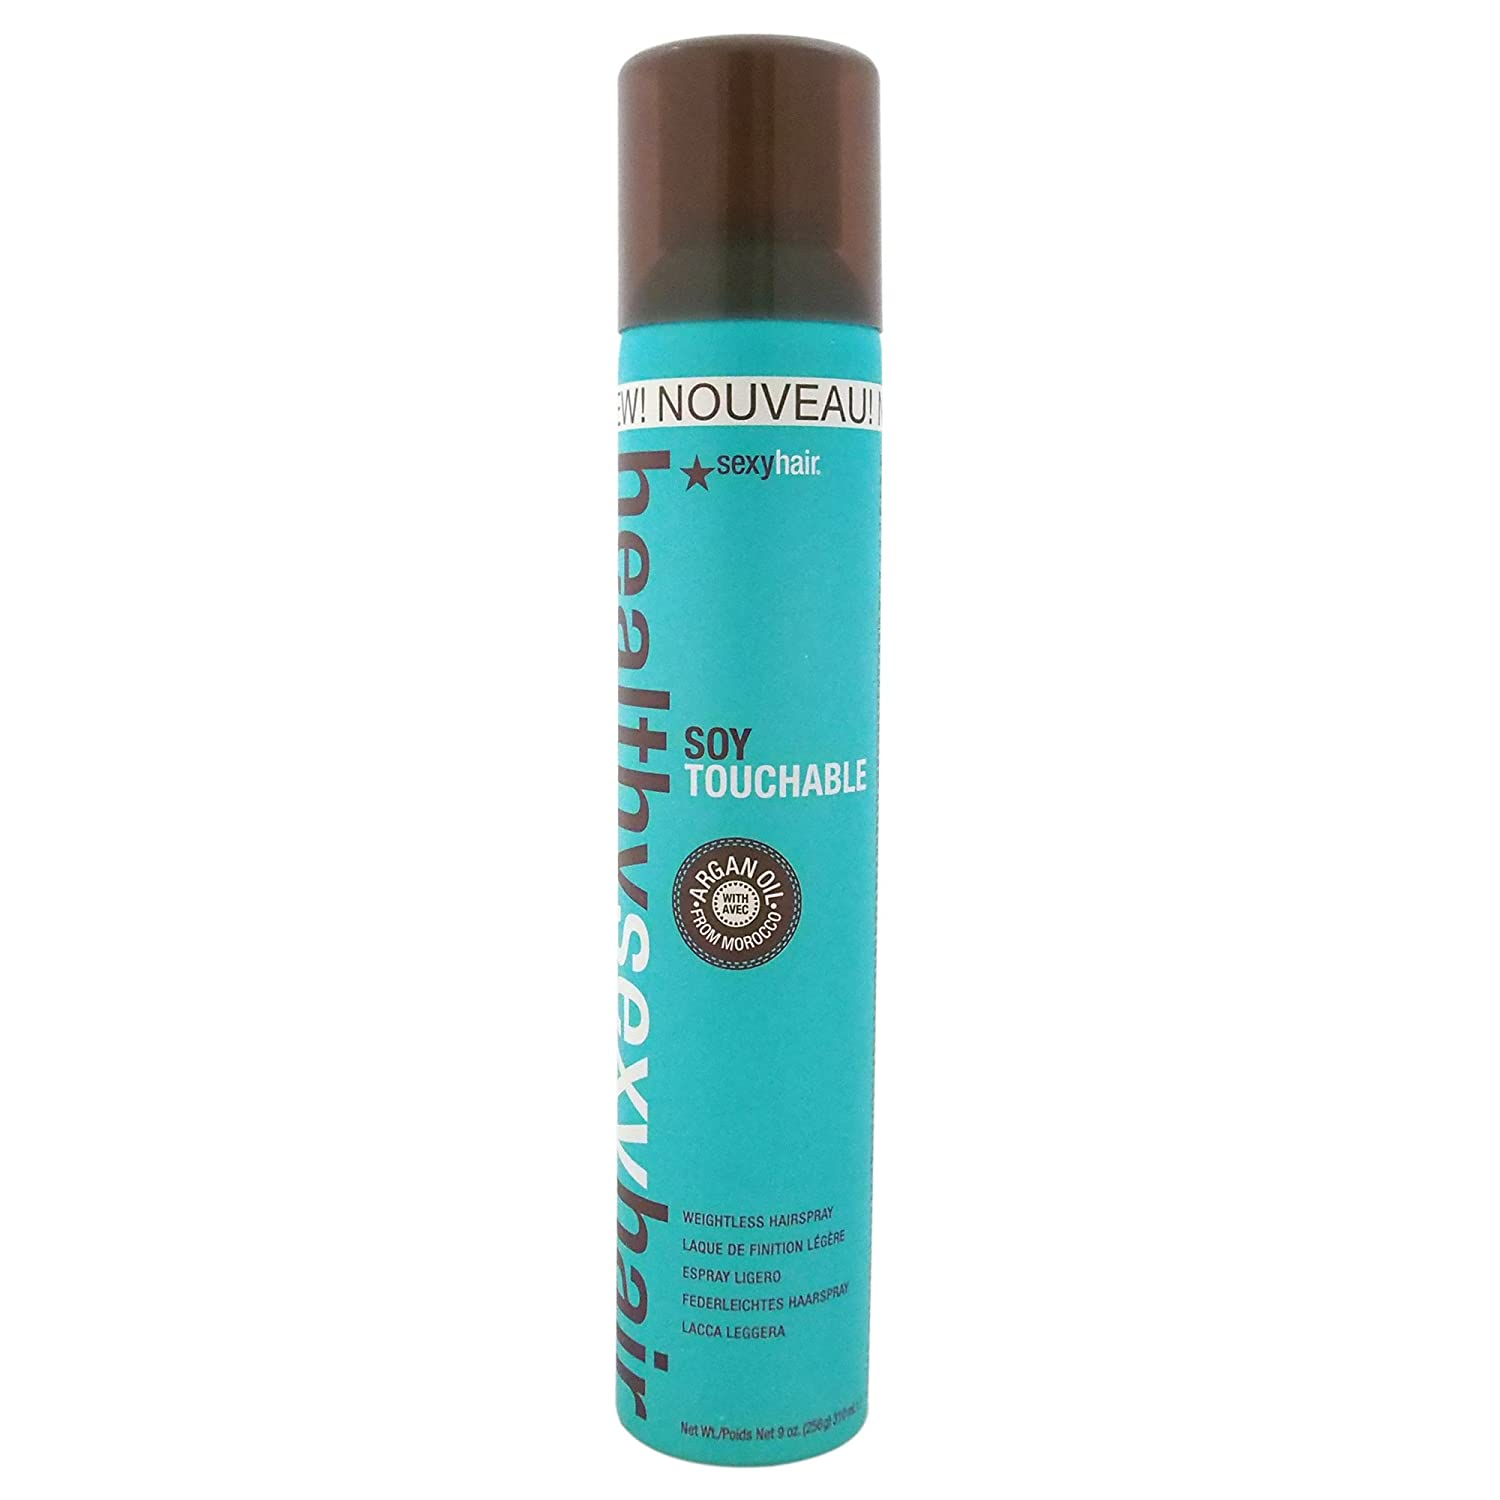 sexyhair Soy Touchable No Crunch Hairspray, 1er Pack (1 x 300 ml) S2028